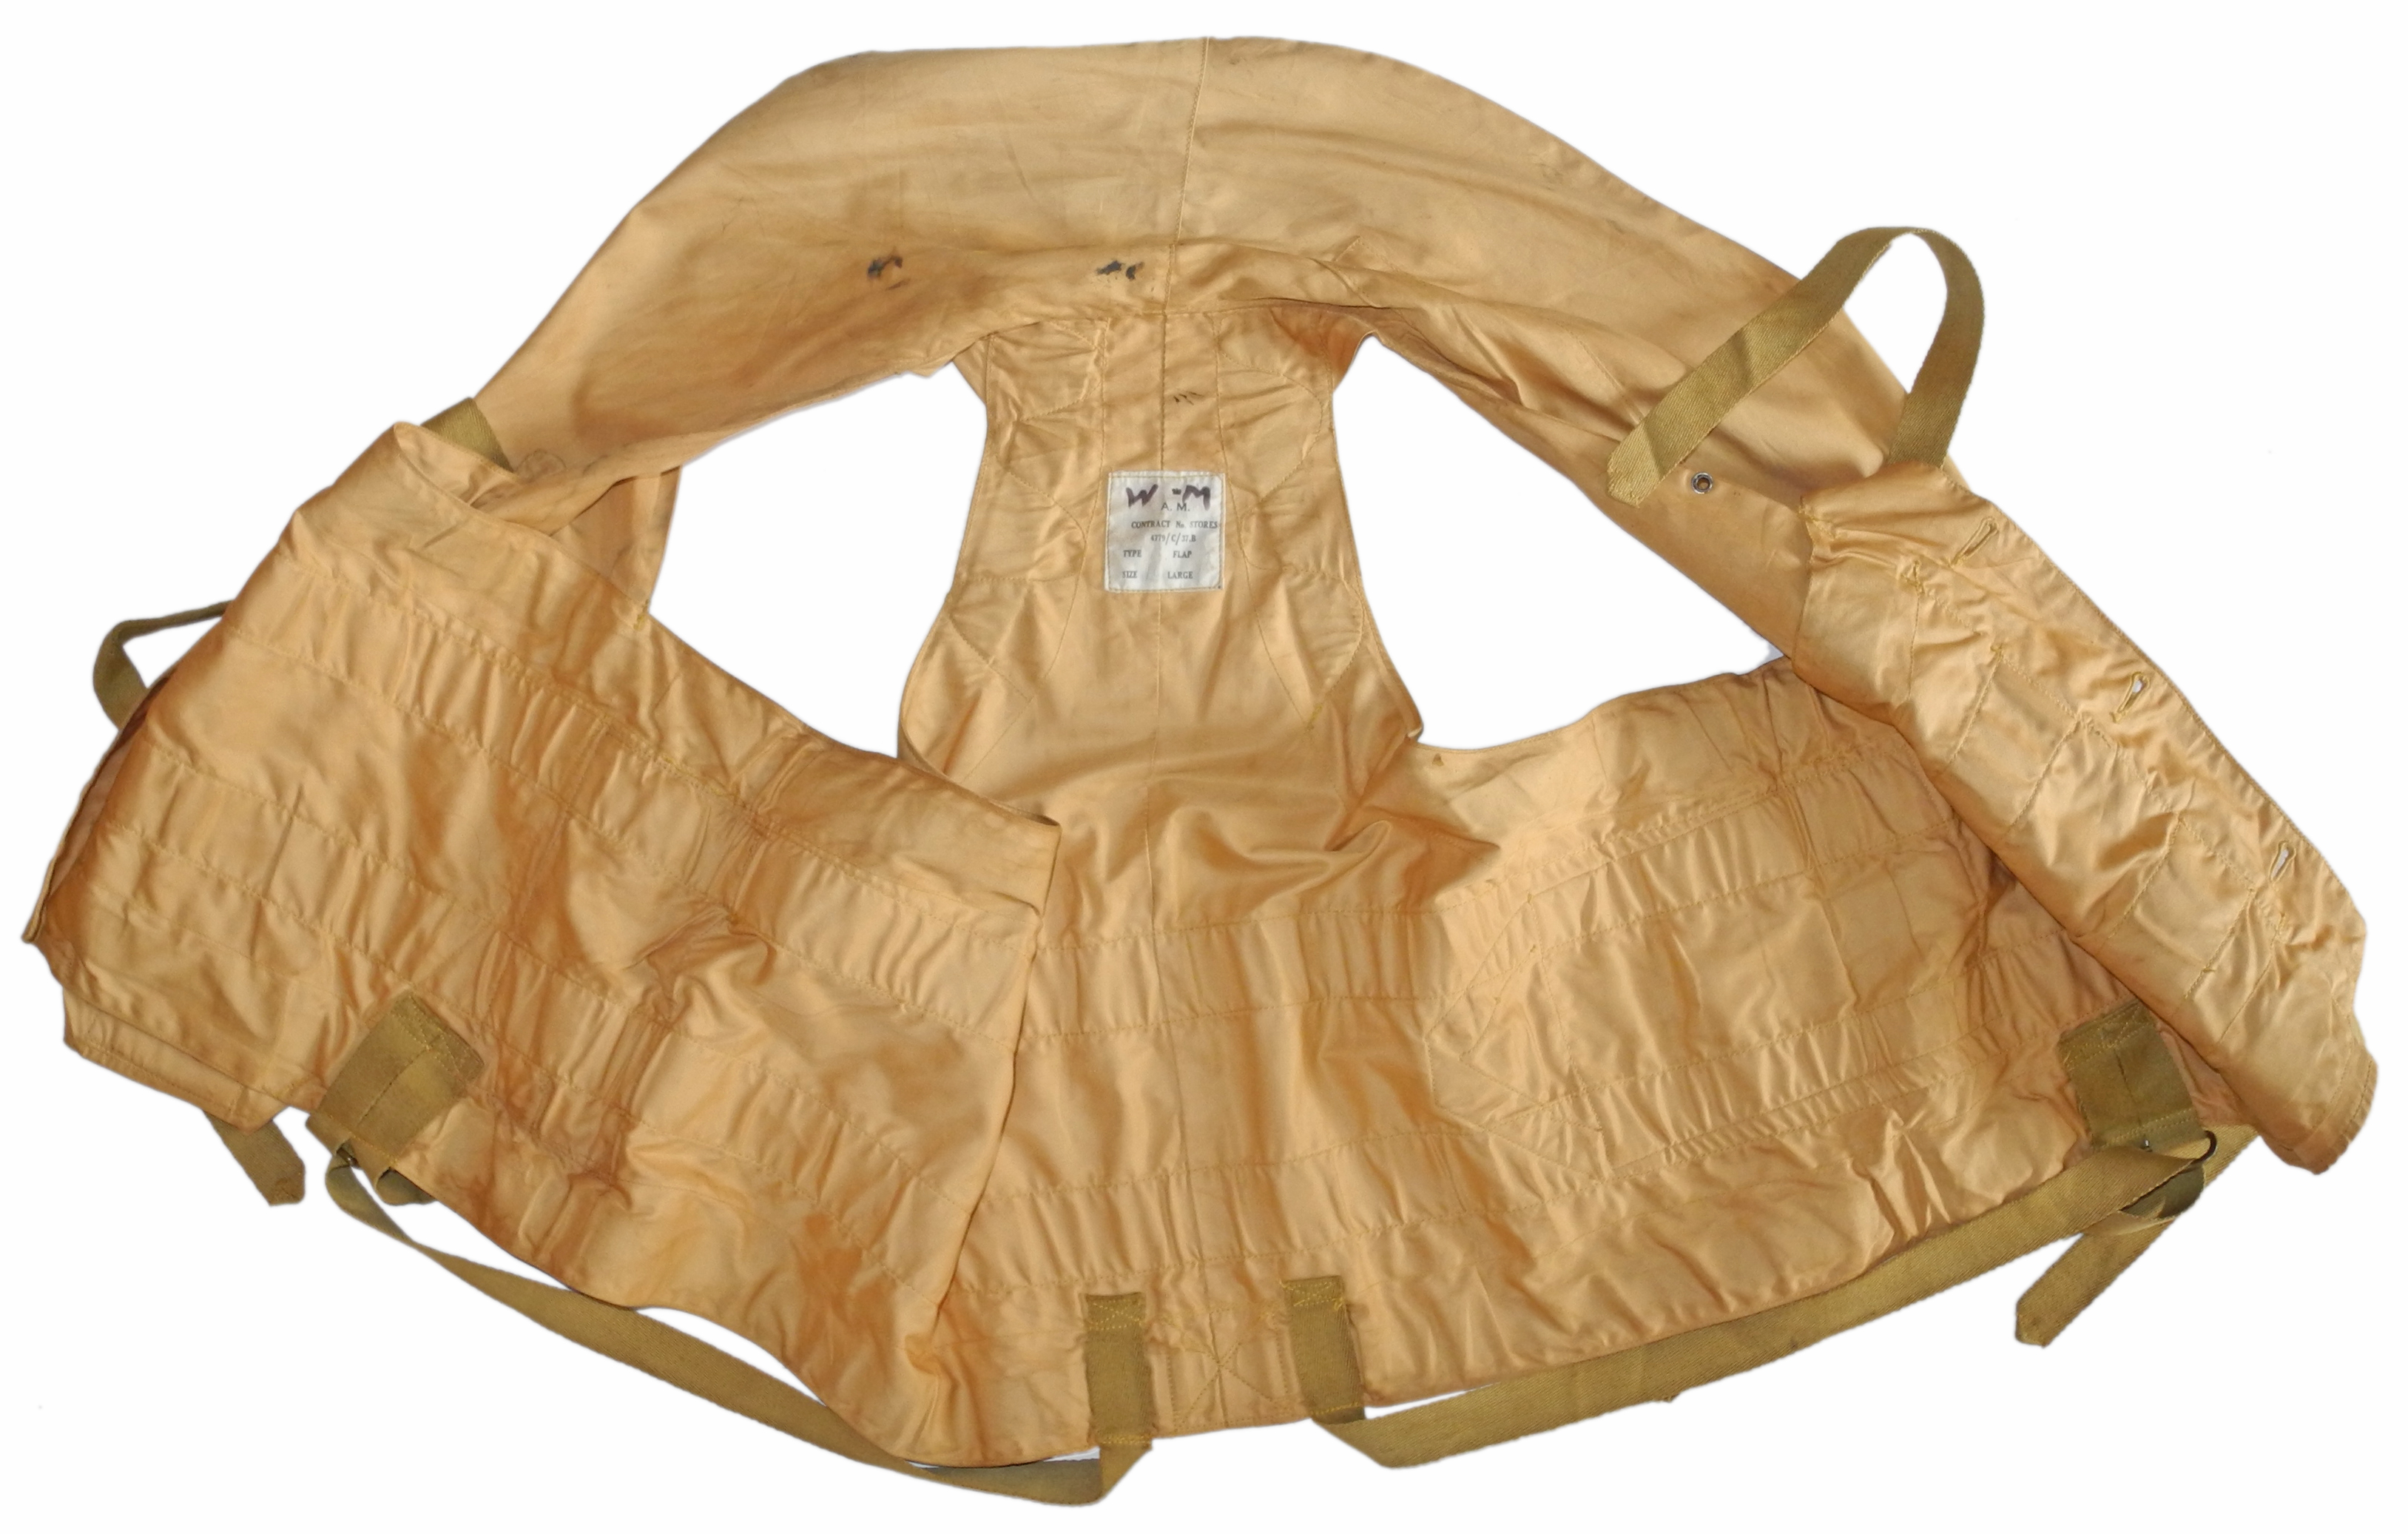 RAF 1941 Pattern Life Vest in excellent condition.